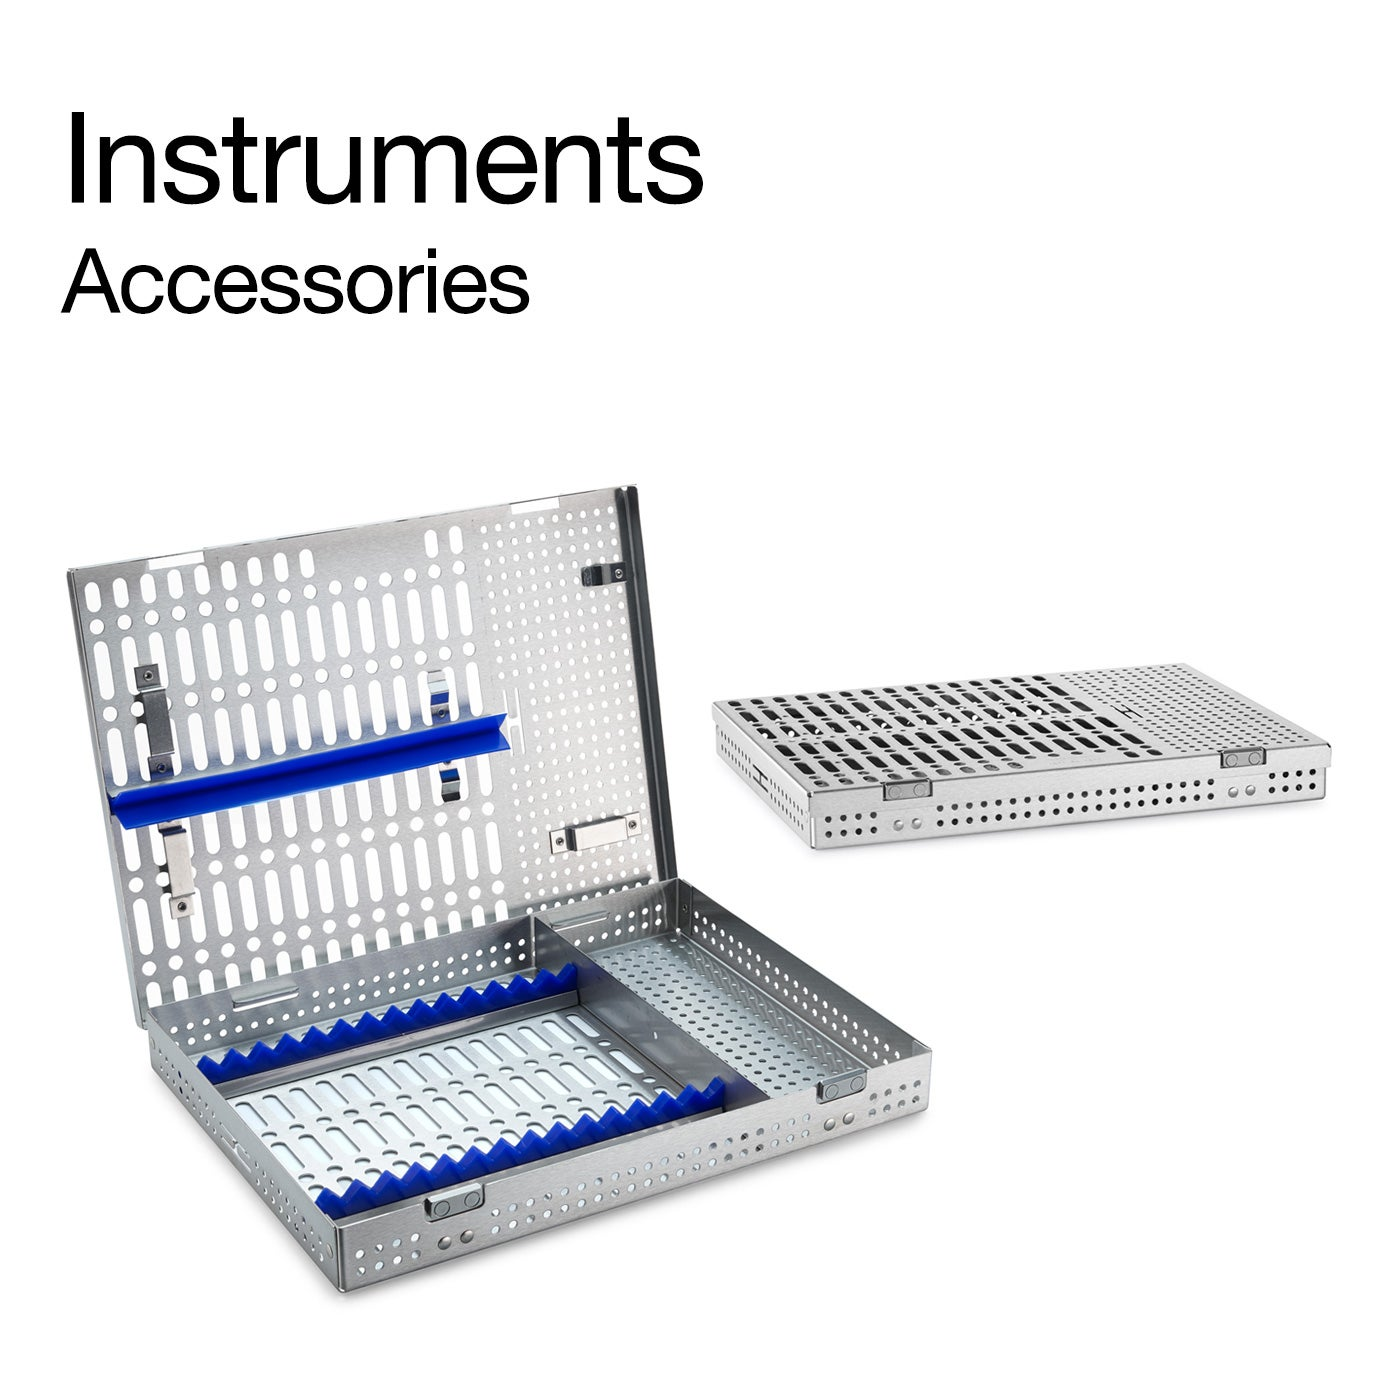 Carefully crafted by skilled professionals, DenMat's Hartzell® instrument accessories have maintained the same high standards of manufacturing excellence established by their founders in 1935.